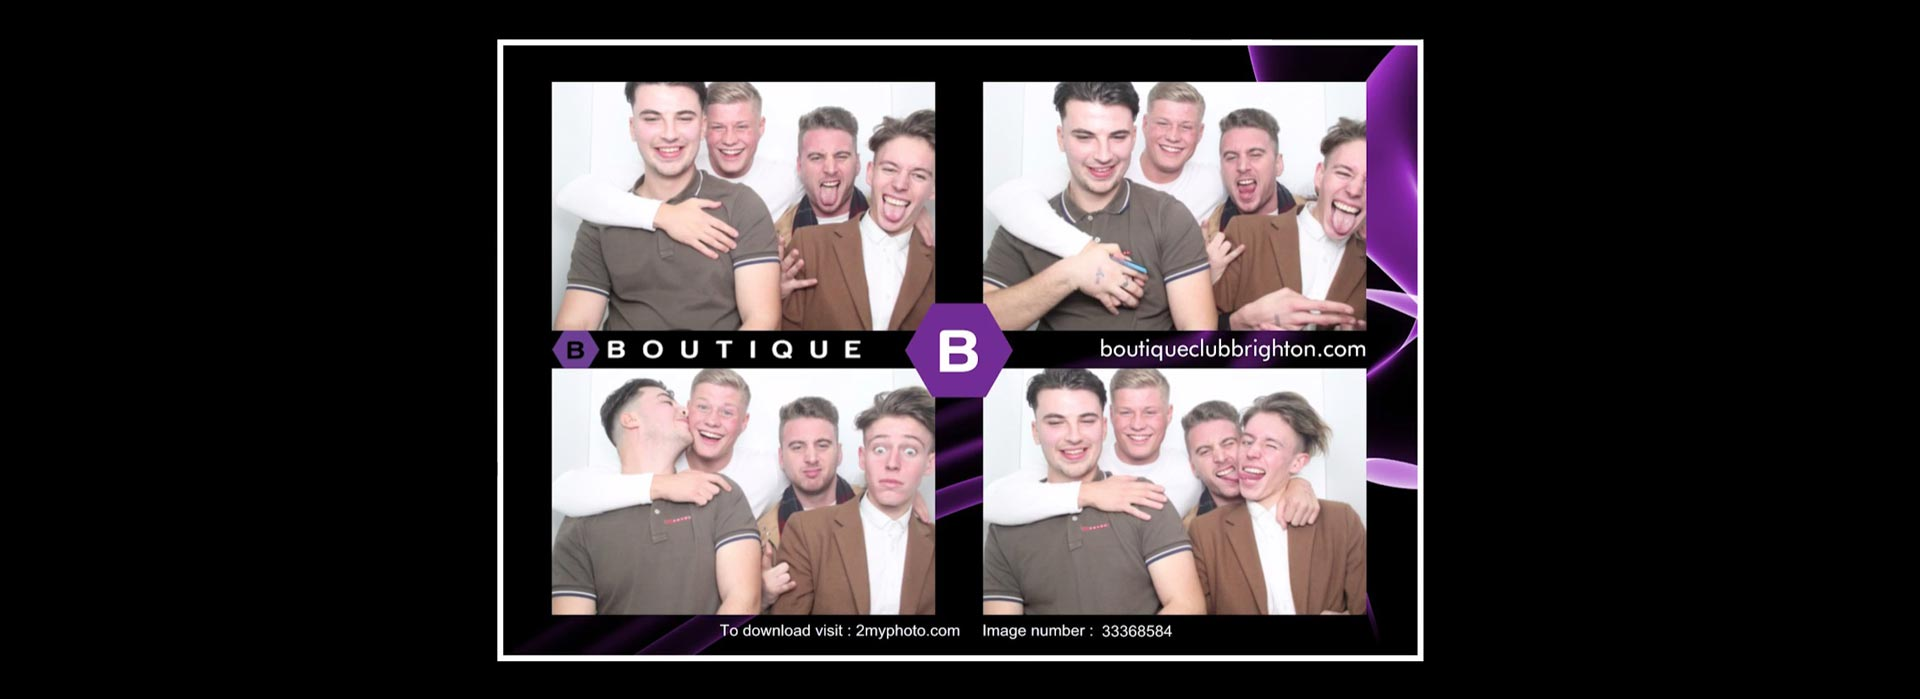 Branded night club photo booth image